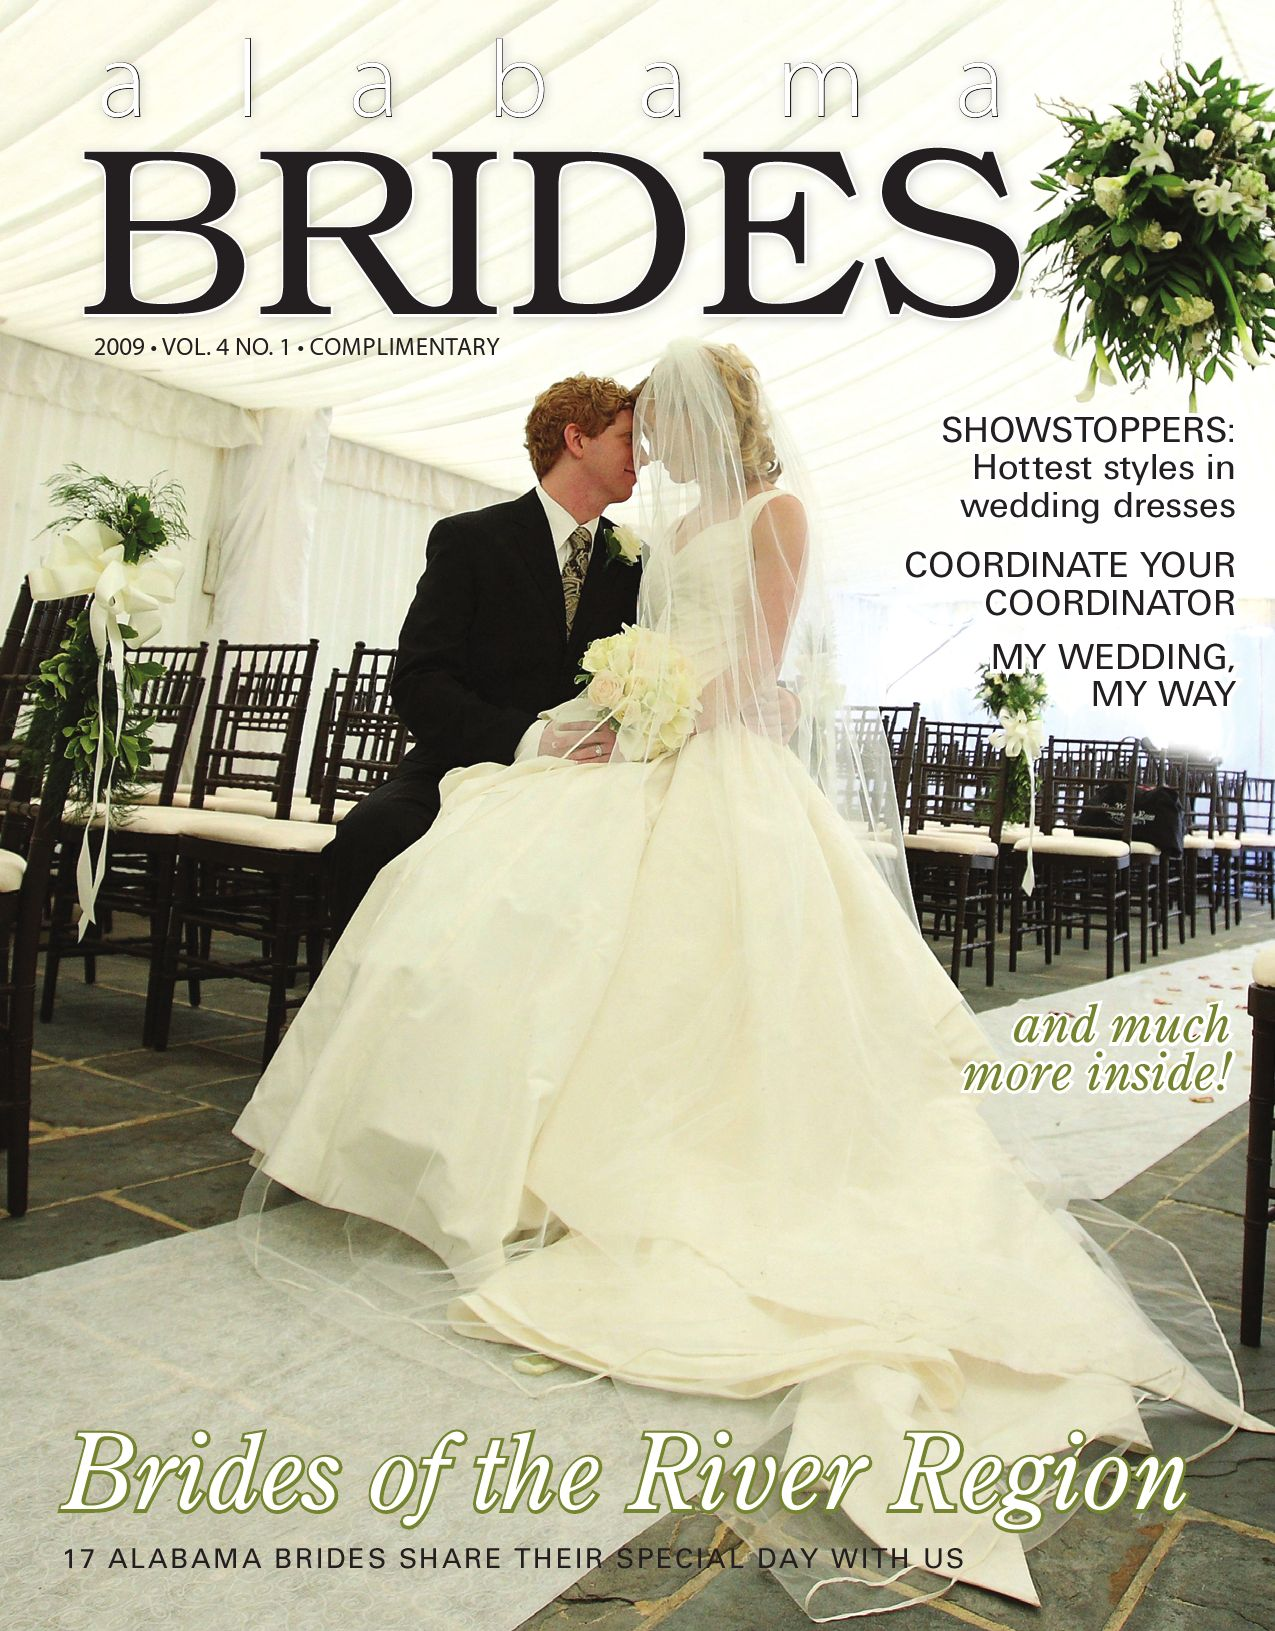 Alabama Brides Spring 2009 by Montgomery Advertiser - issuu